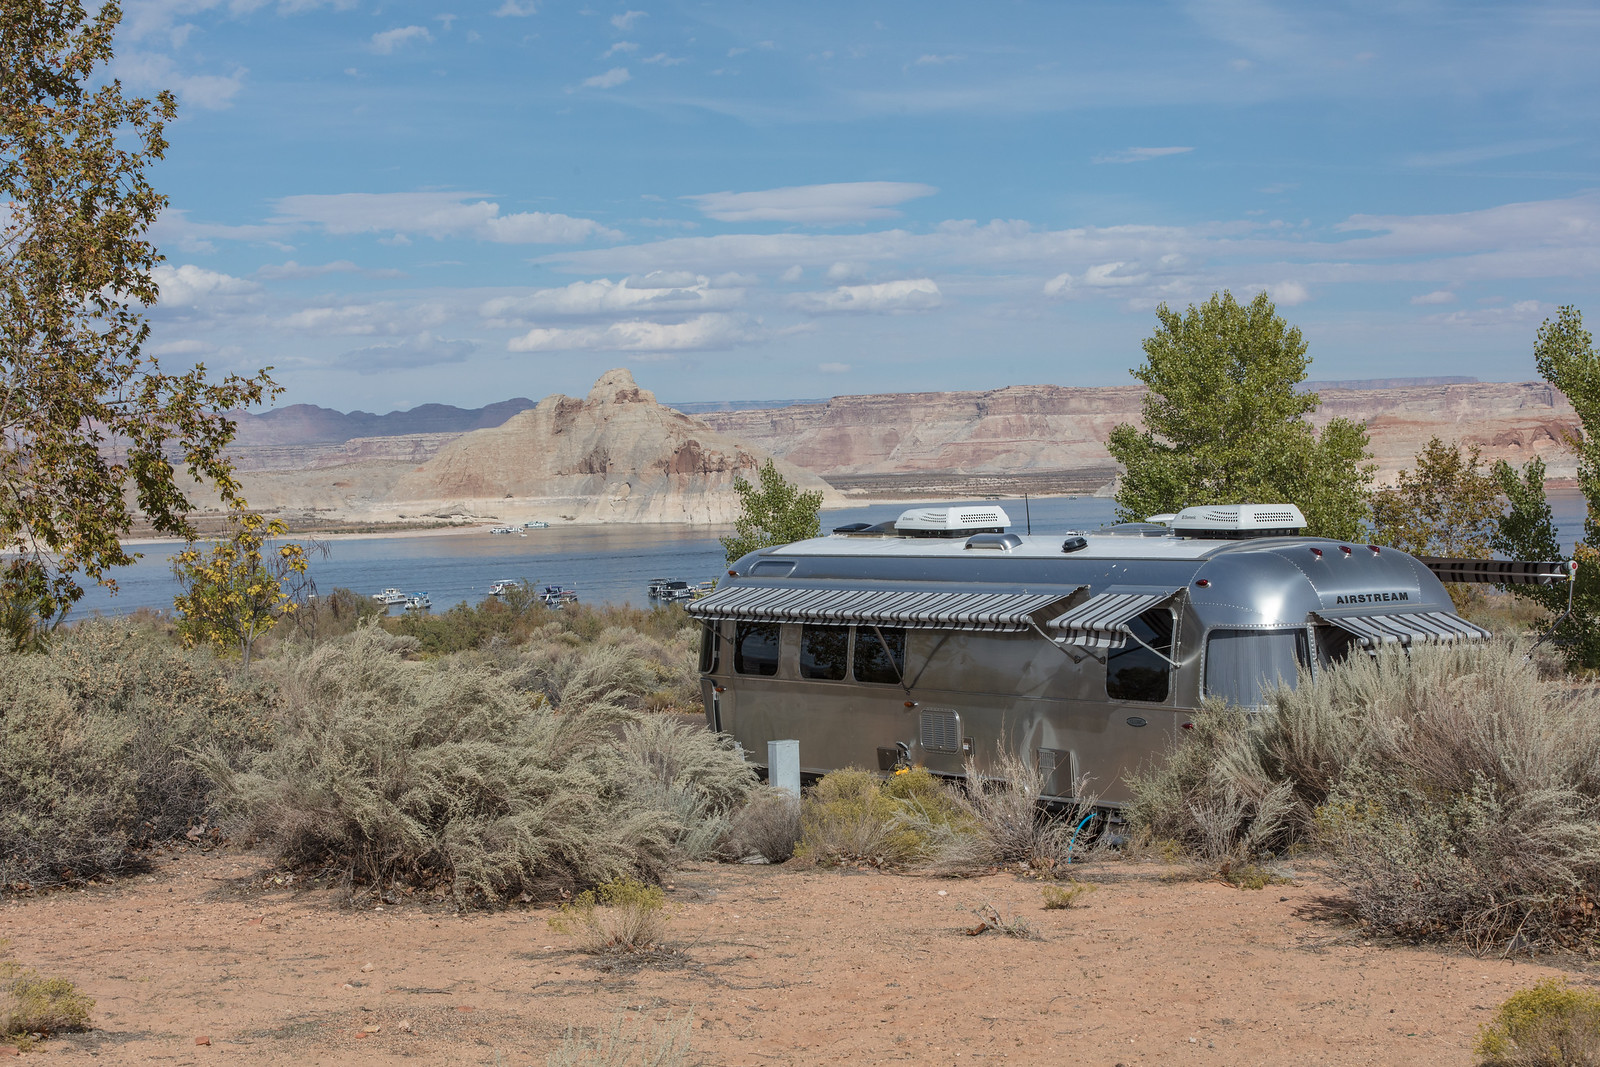 Wahweap RV center at Glen Canyon National Recreational Area.  Lake Powell in background.  Near Page, AZ.